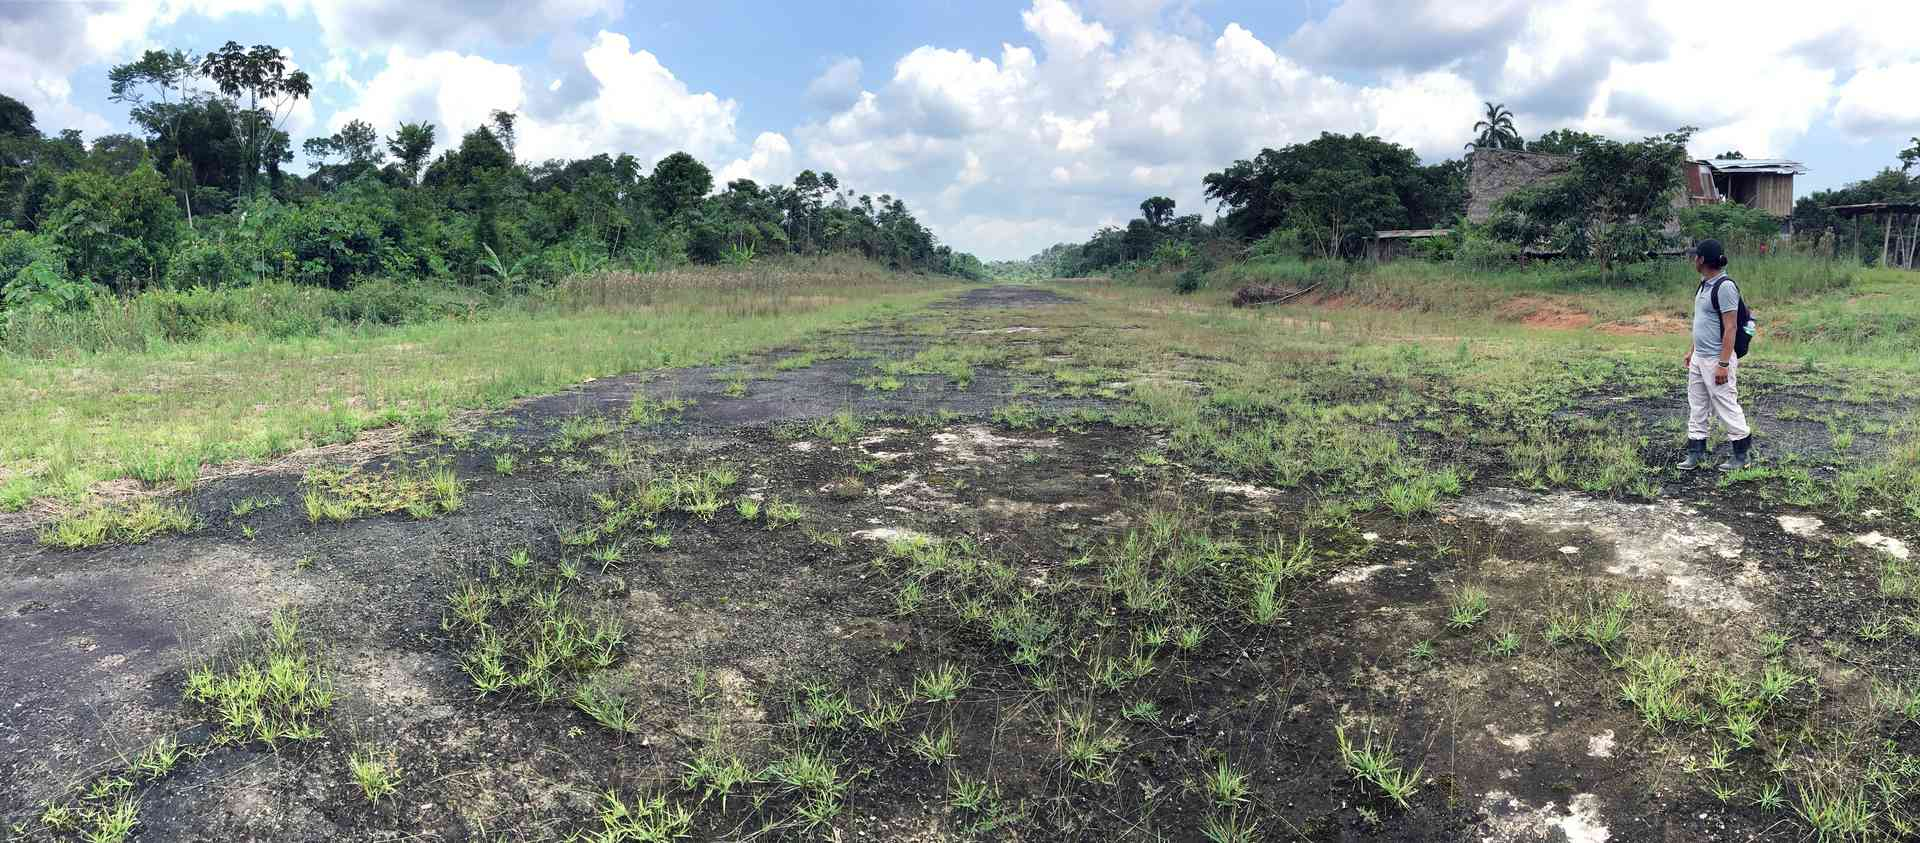 road built by oil companies into the Amazon